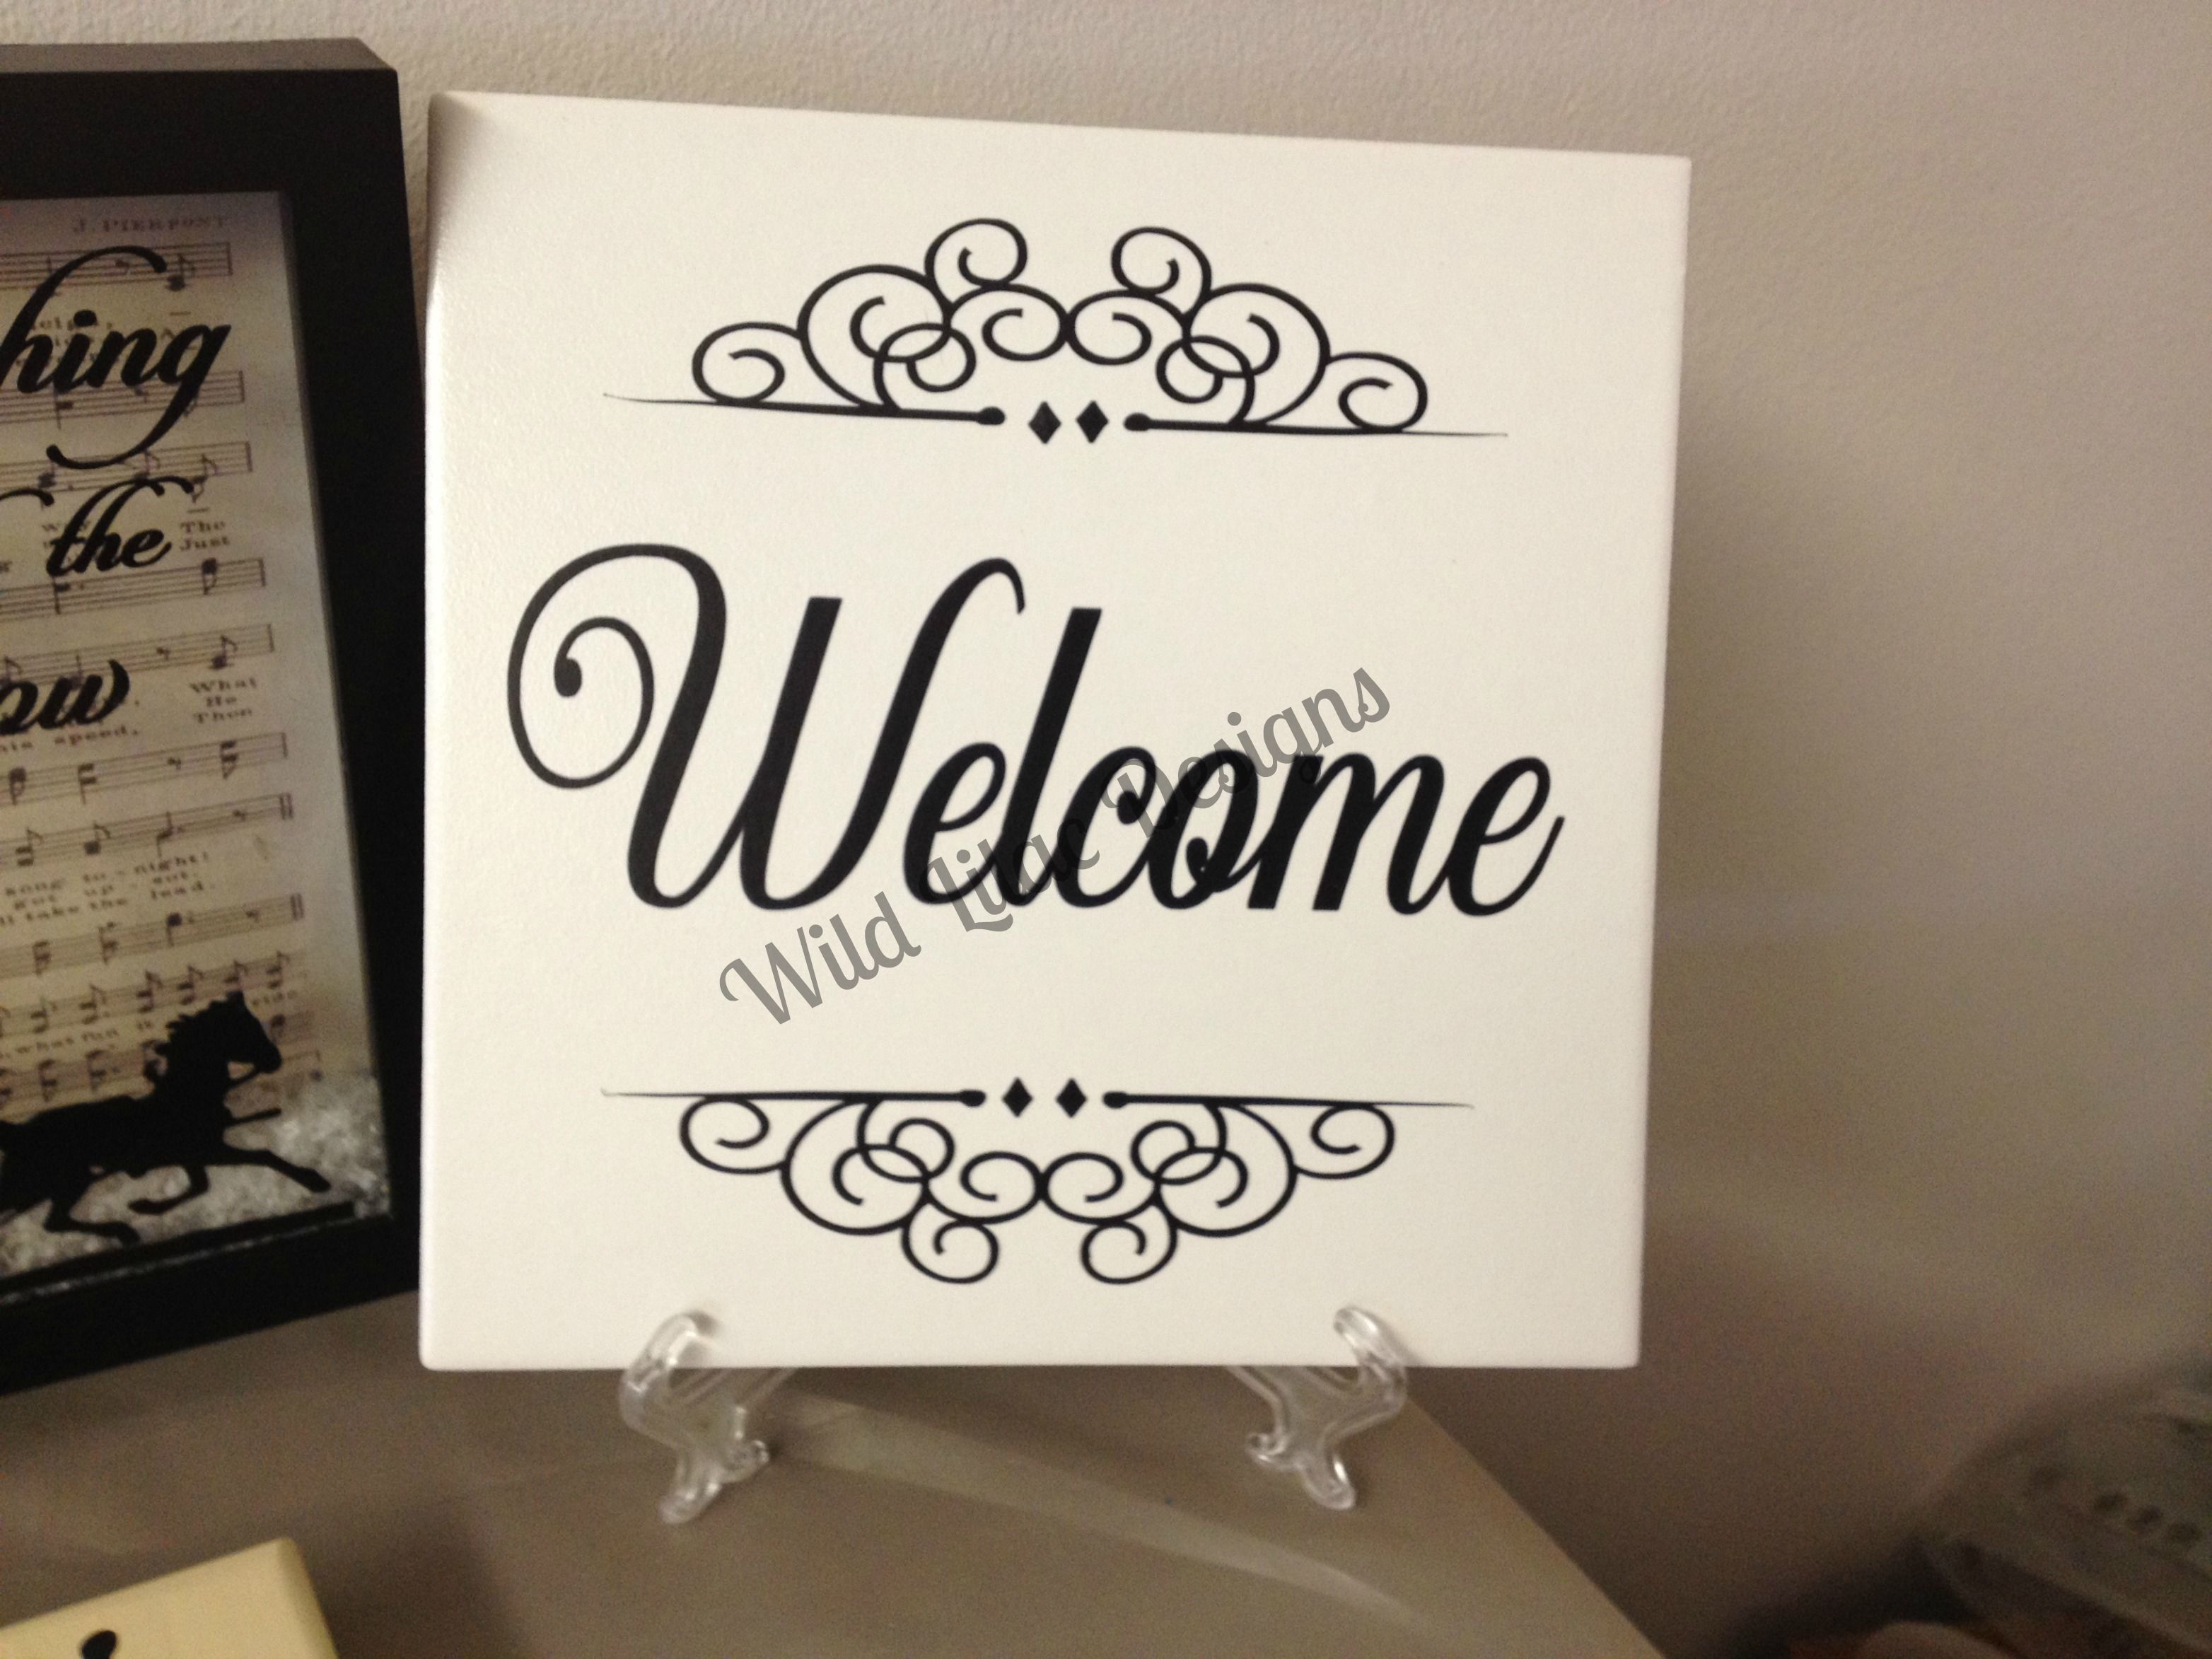 Welcome sign on 8 x 8 ceramic tile 15 can be done on wood or tile welcome sign on 8 x 8 ceramic tile 15 can be done on wood dailygadgetfo Choice Image